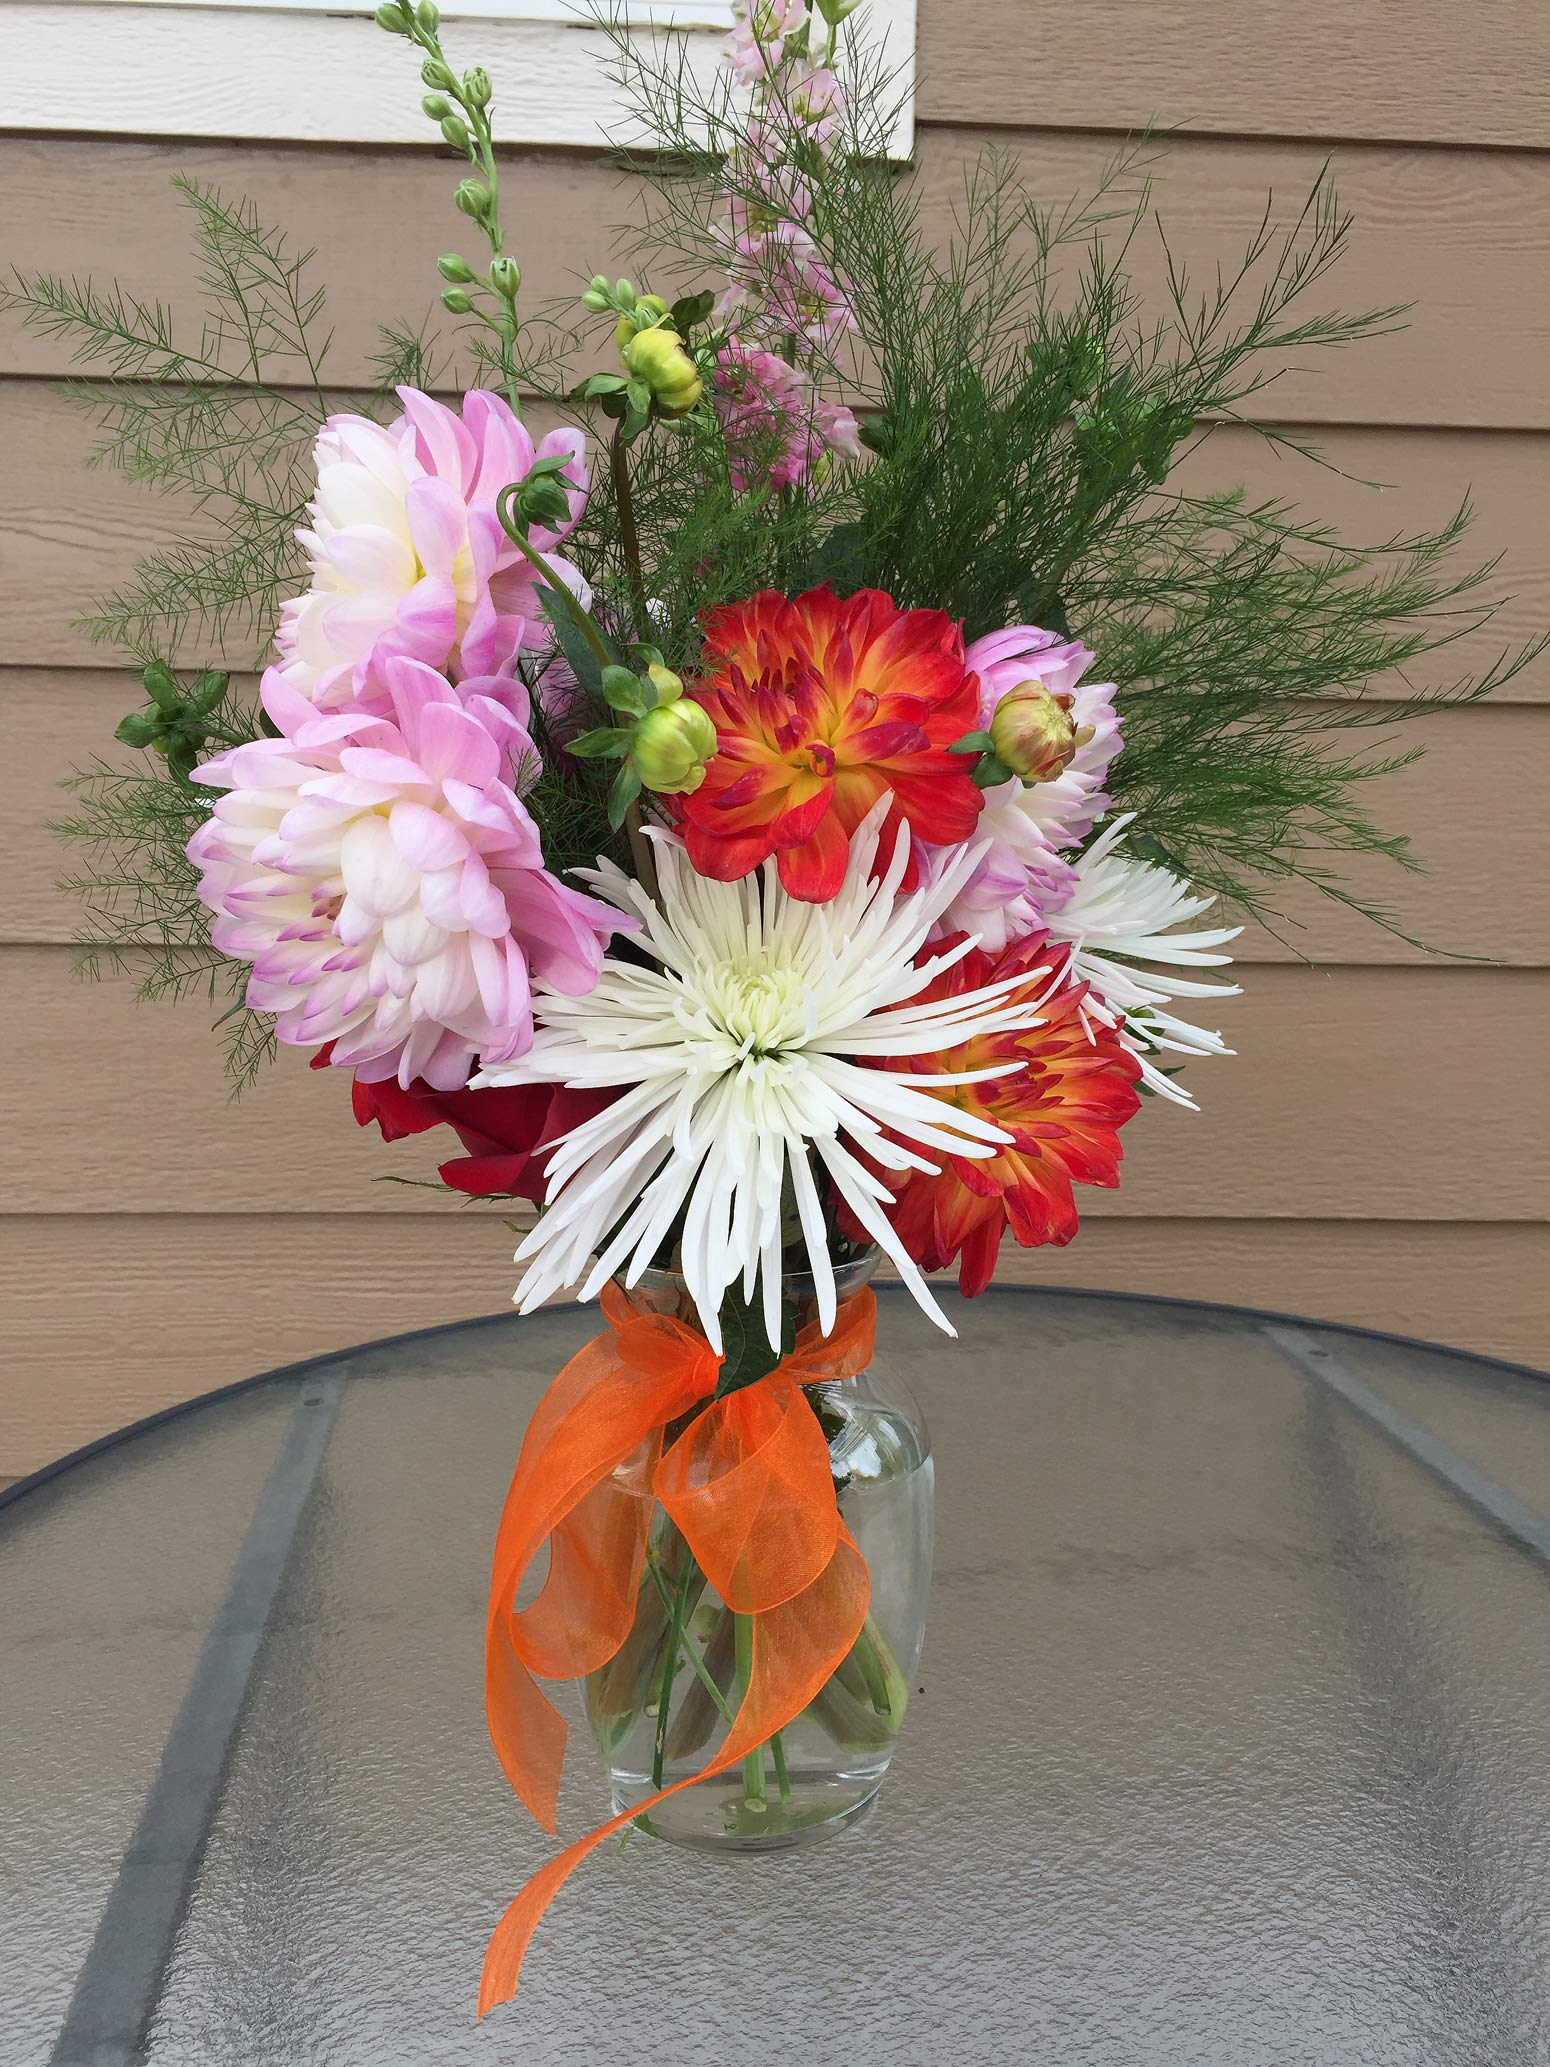 table centerpiece for spring or summer event - fresh flowers